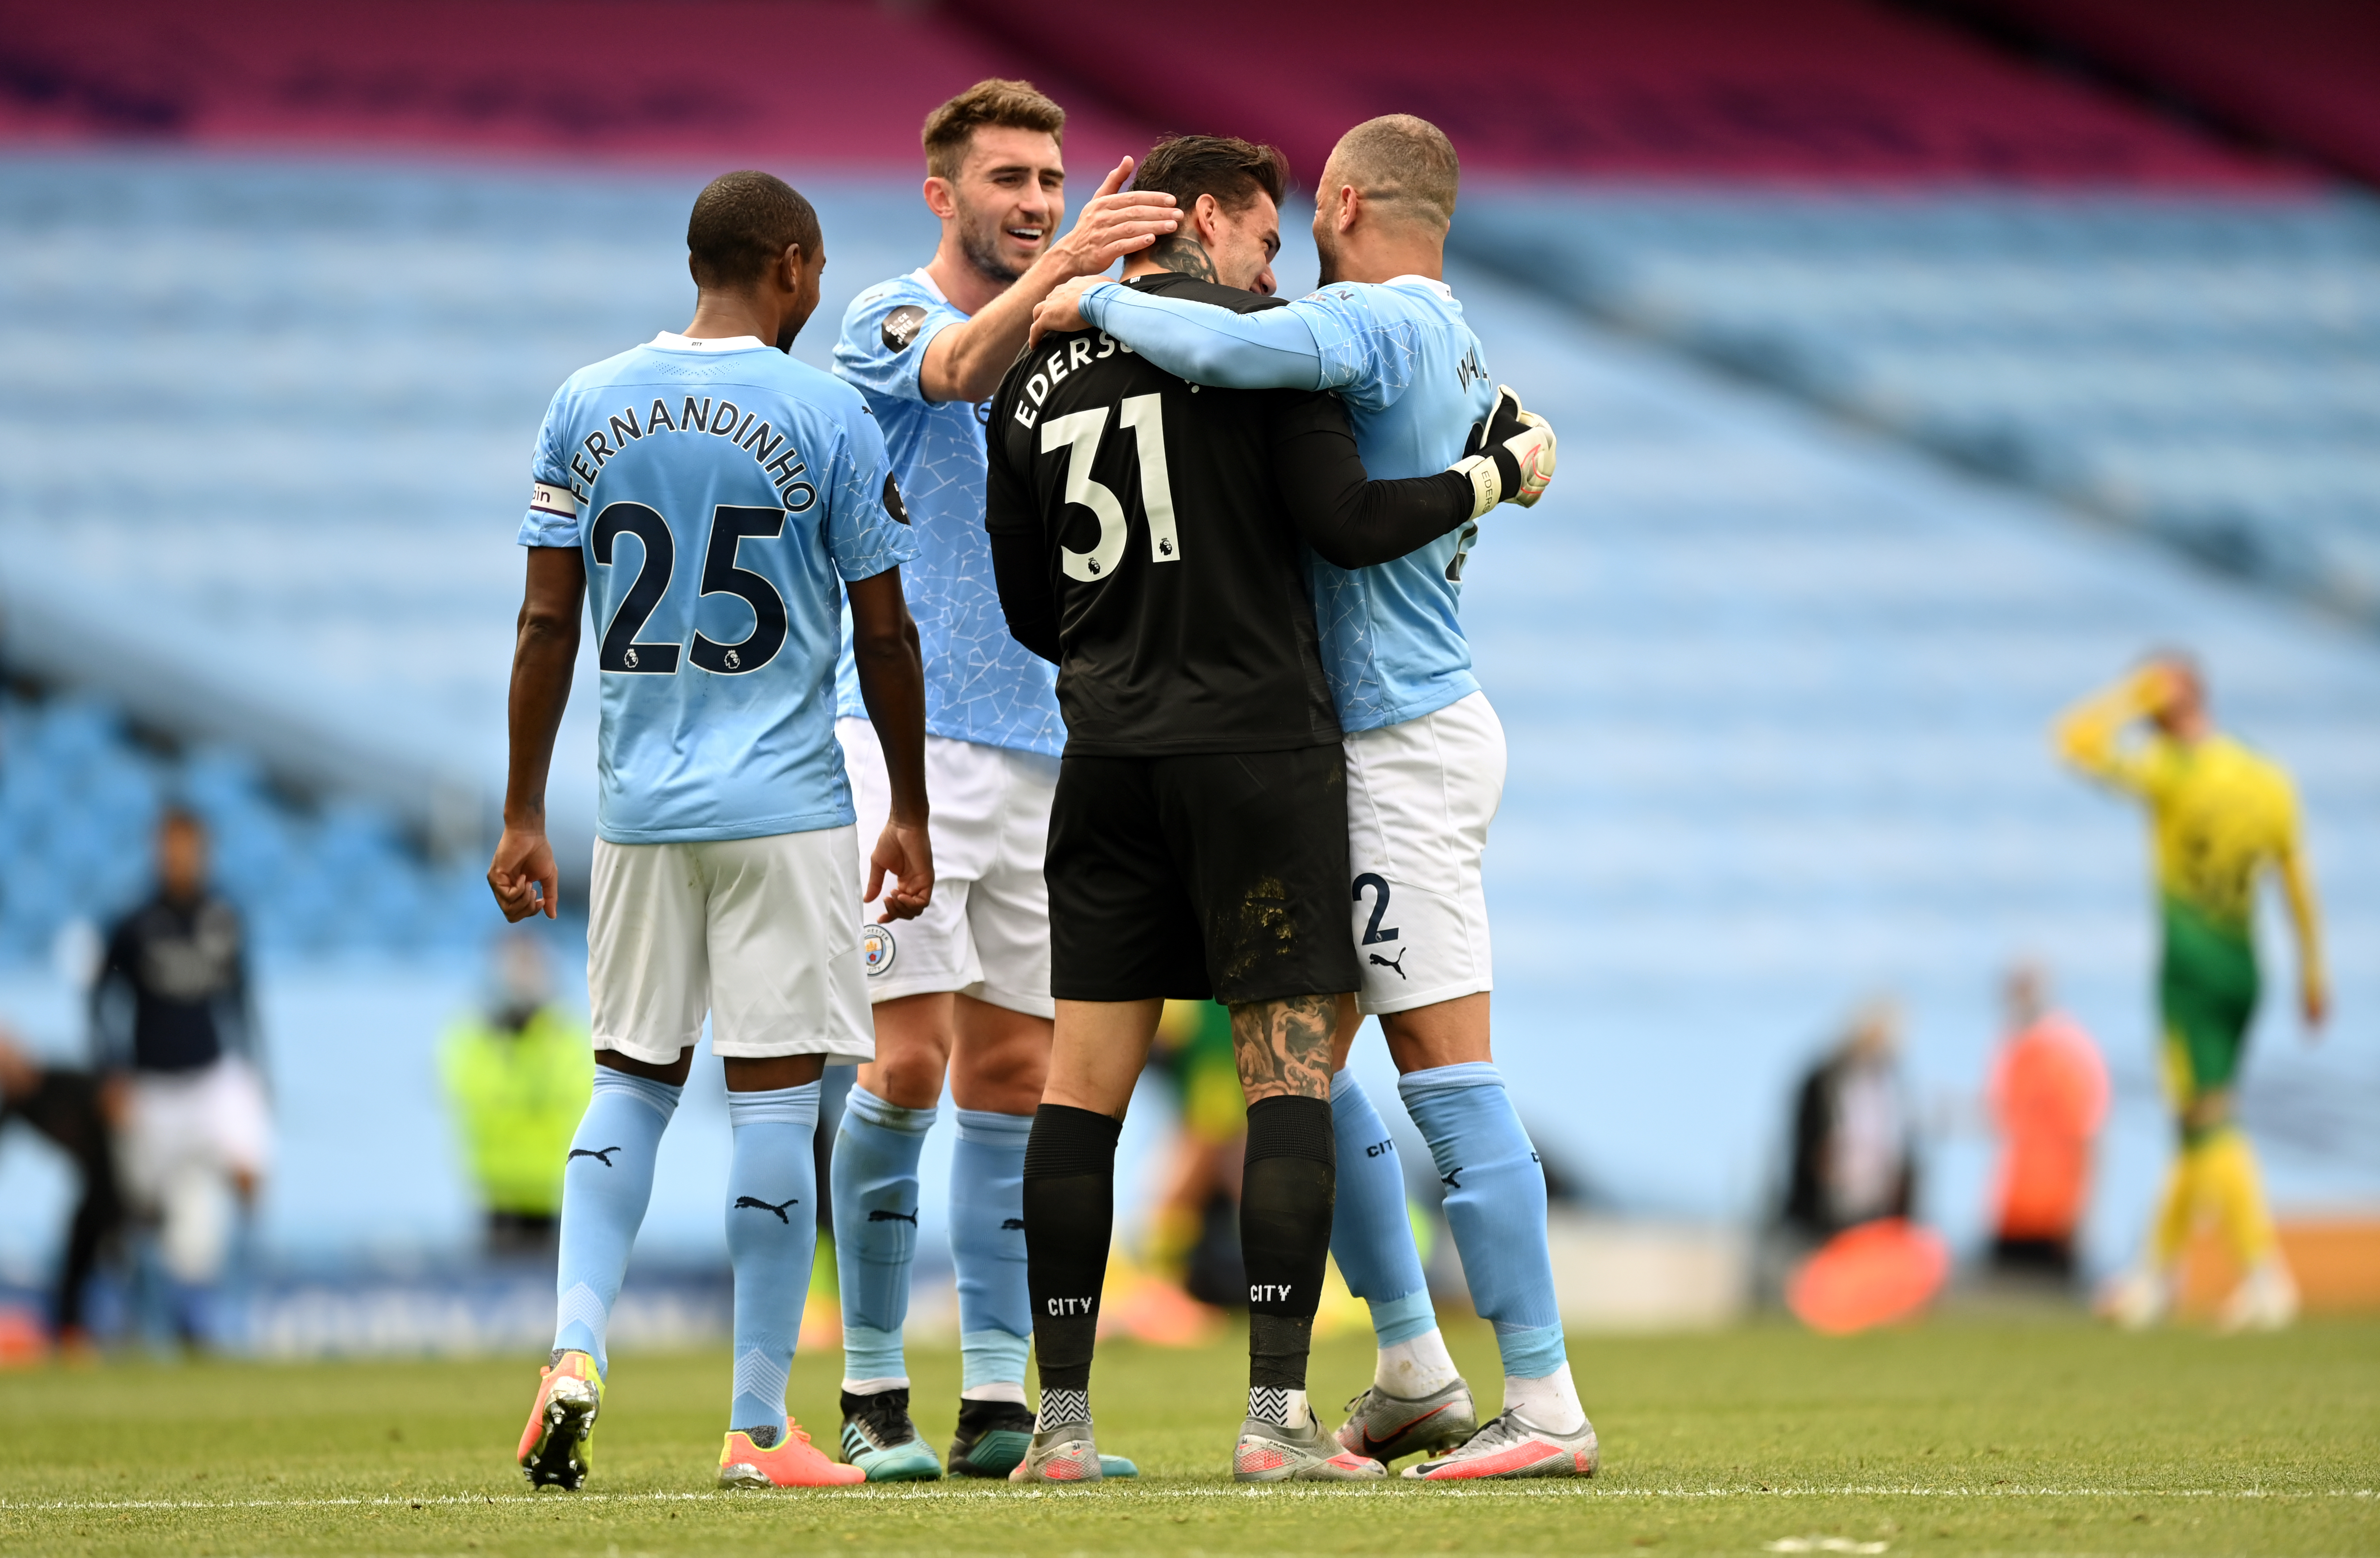 Champions League What You Need To Know About Man City sportswashing And Future Of Financial Fair Play